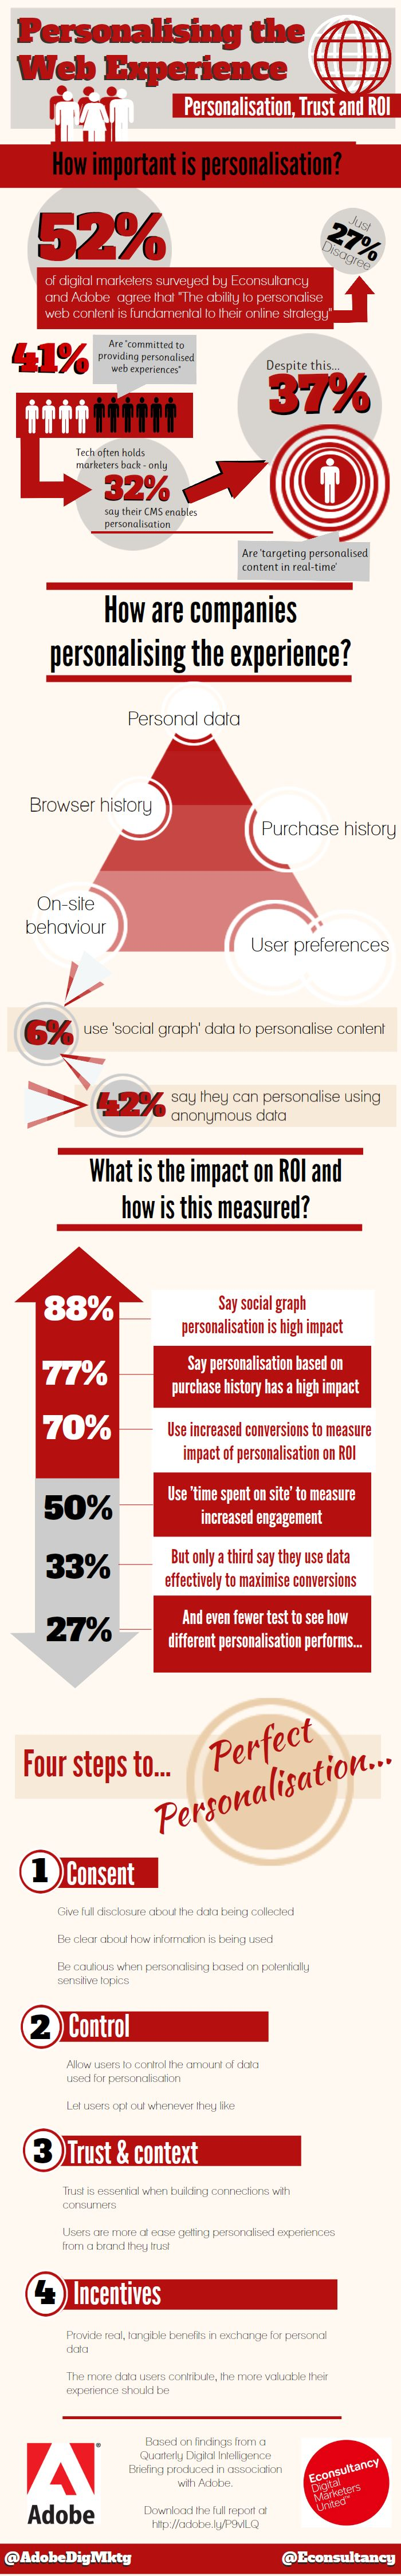 The ROI of personalisation [infographic]